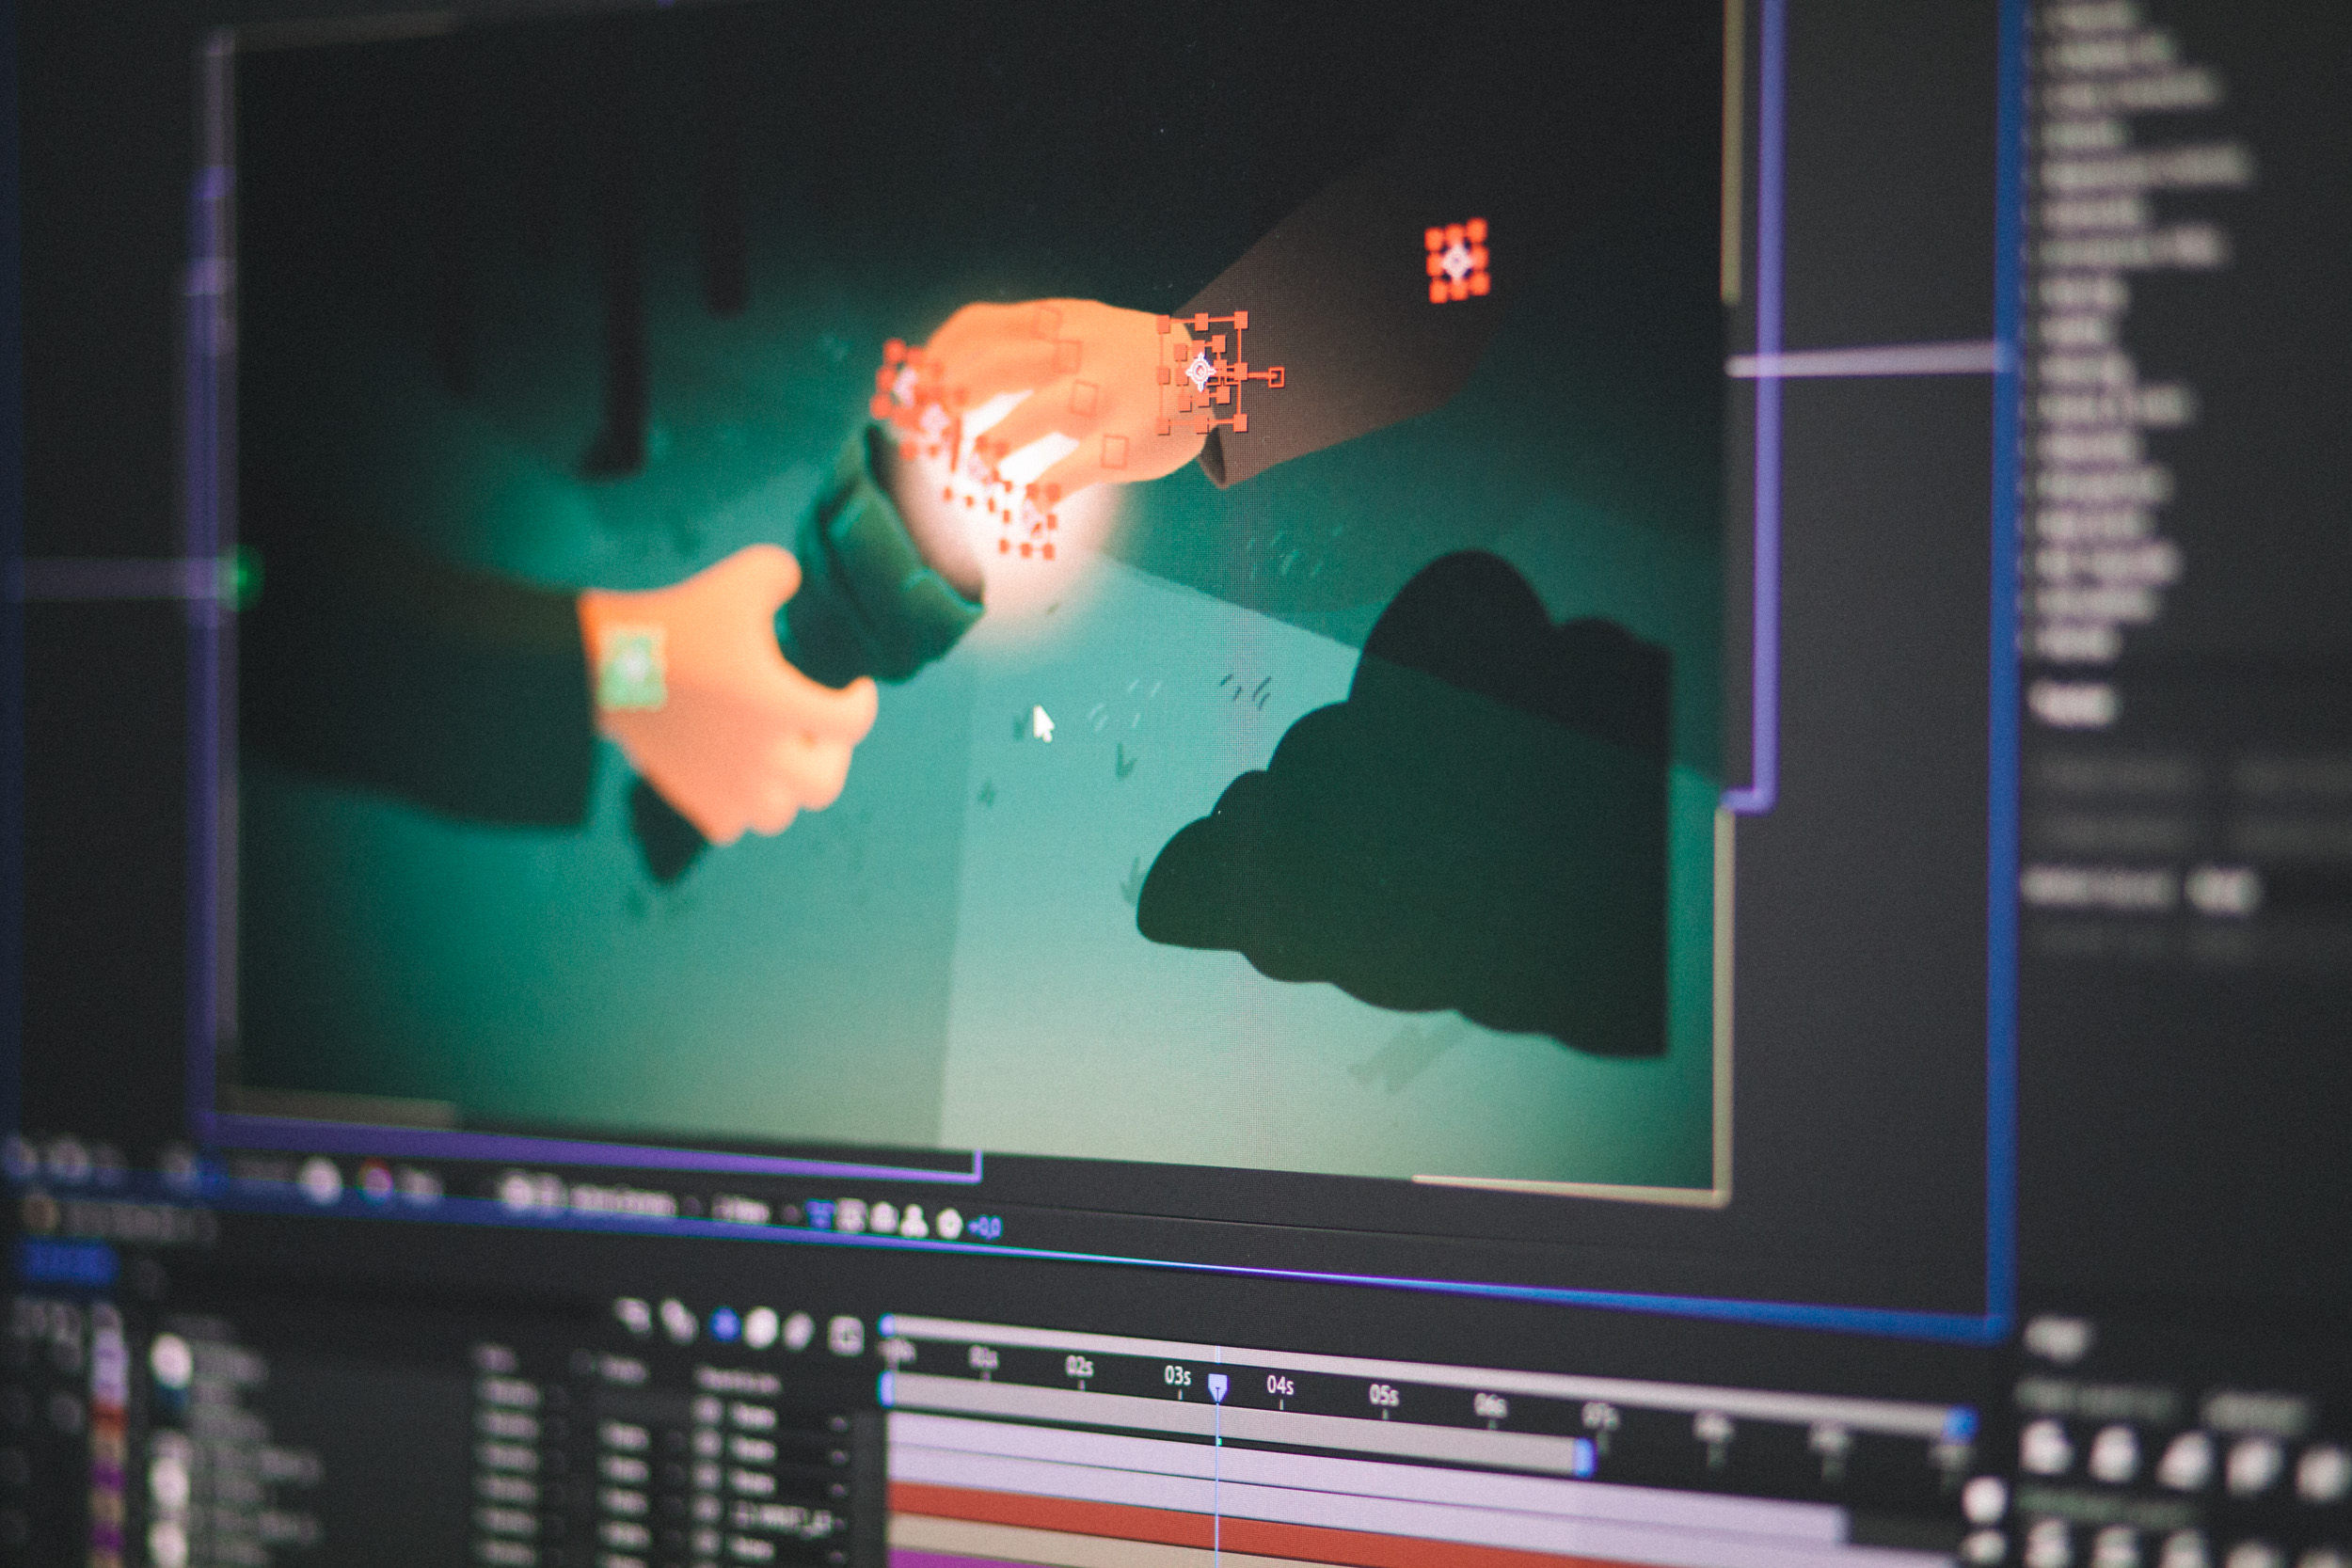 Motion Design & Animation - Shapes, colors, characters, typography and design, if it can move we can animate it!